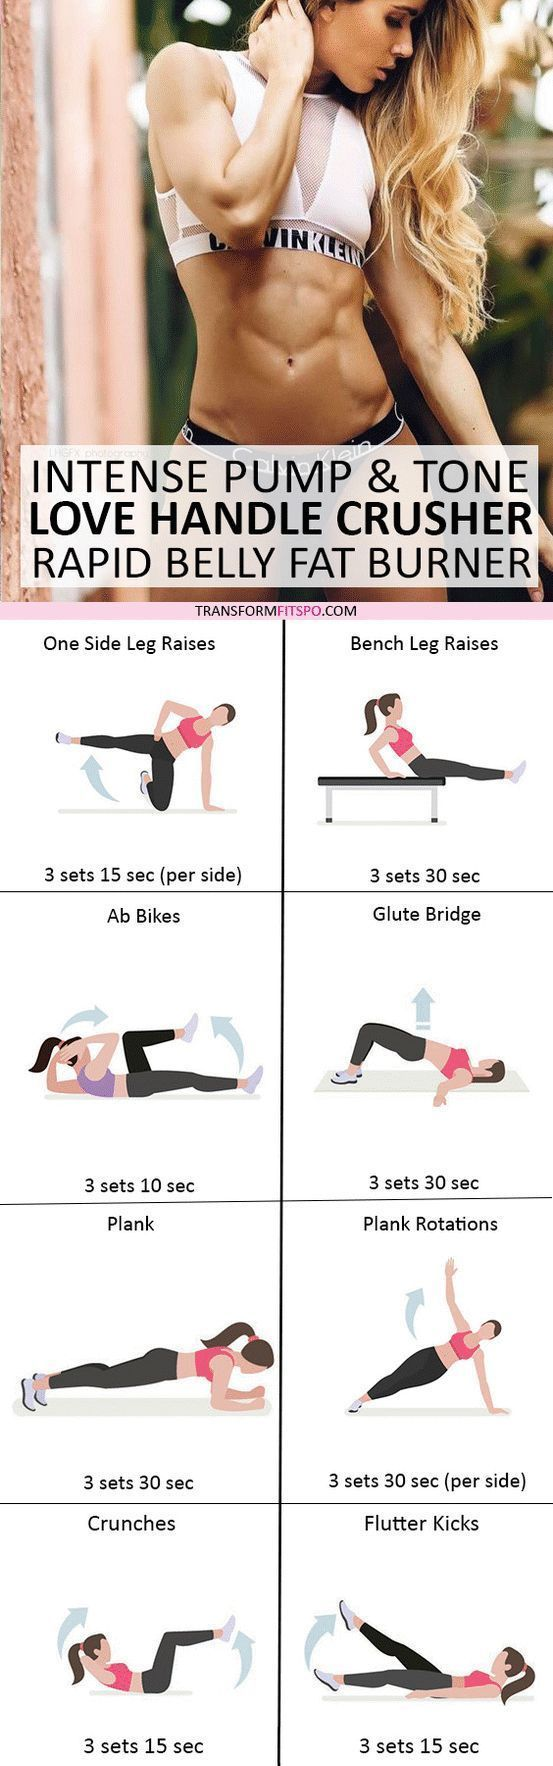 Pump and Tone Love Handle Crusher Prepare to Burn That Belly